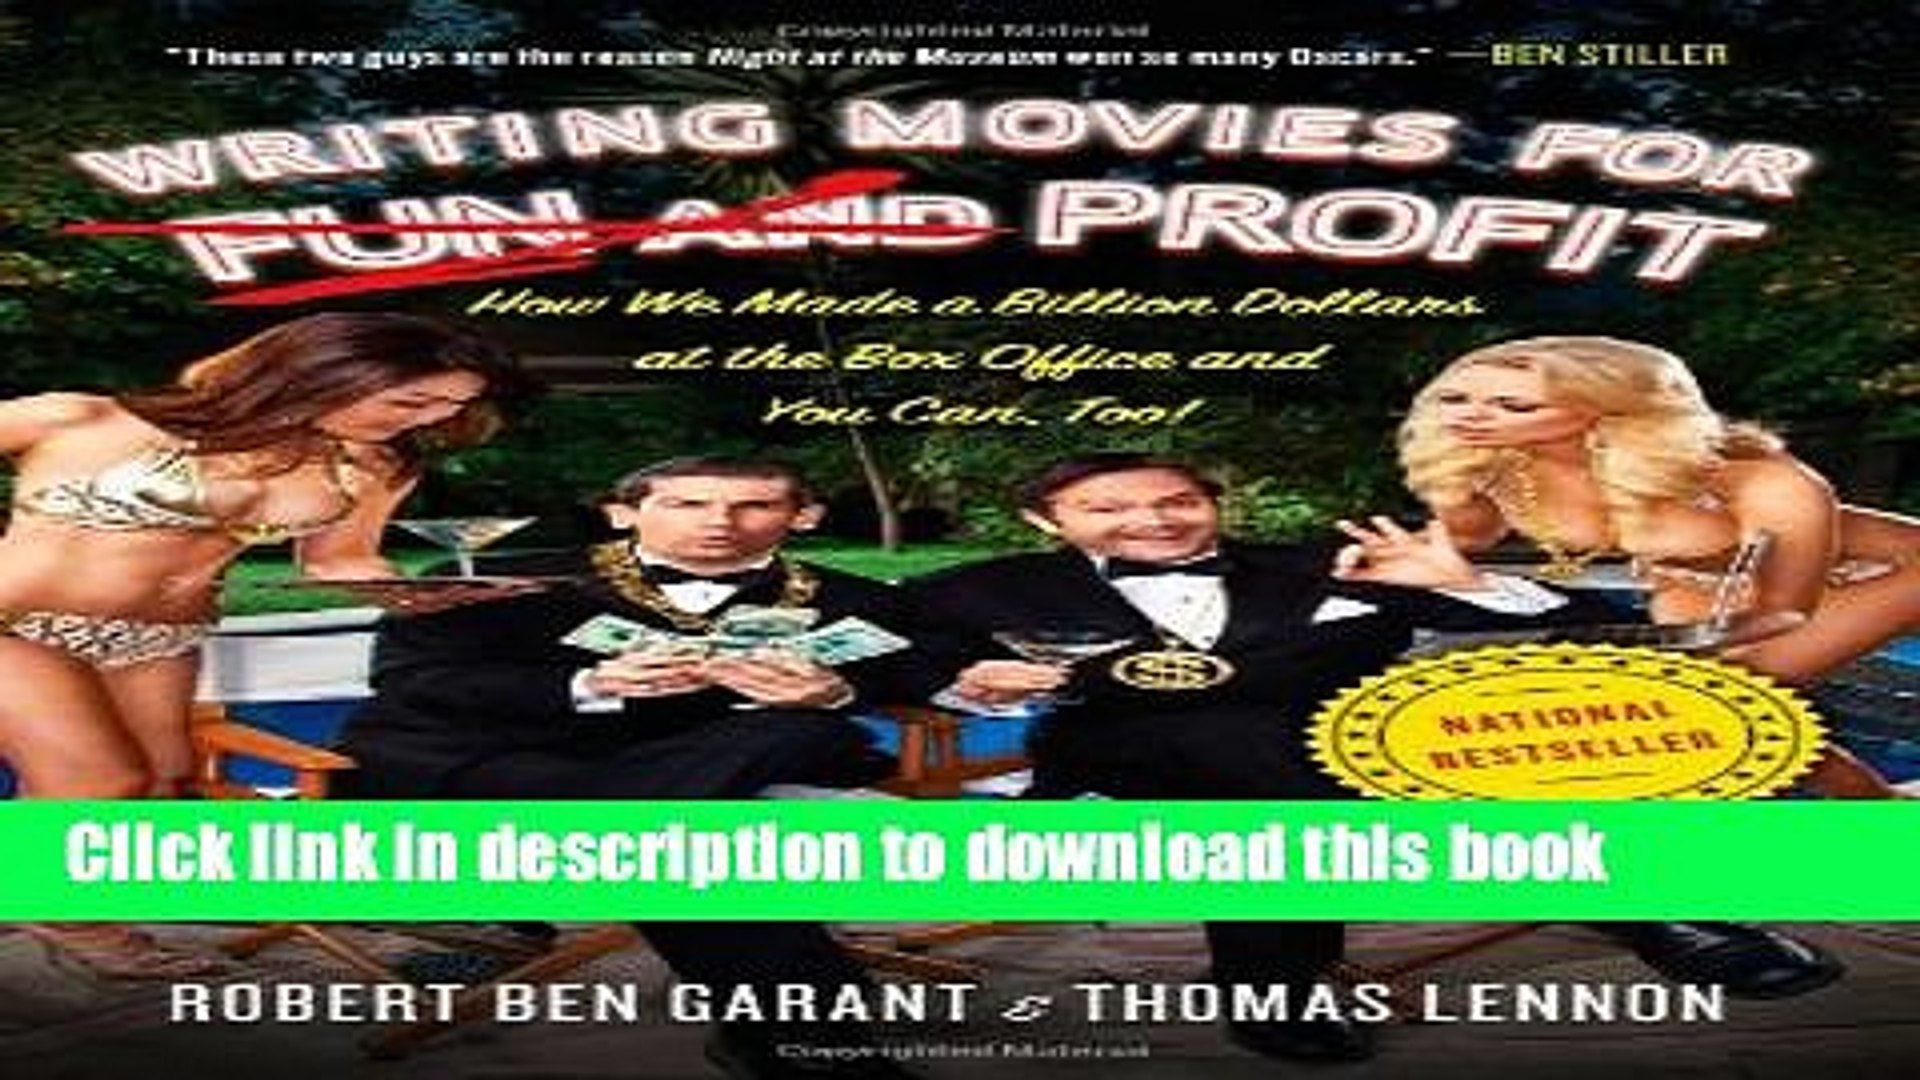 Read Writing Movies for Fun and Profit: How We Made a Billion Dollars at the Box Office and You